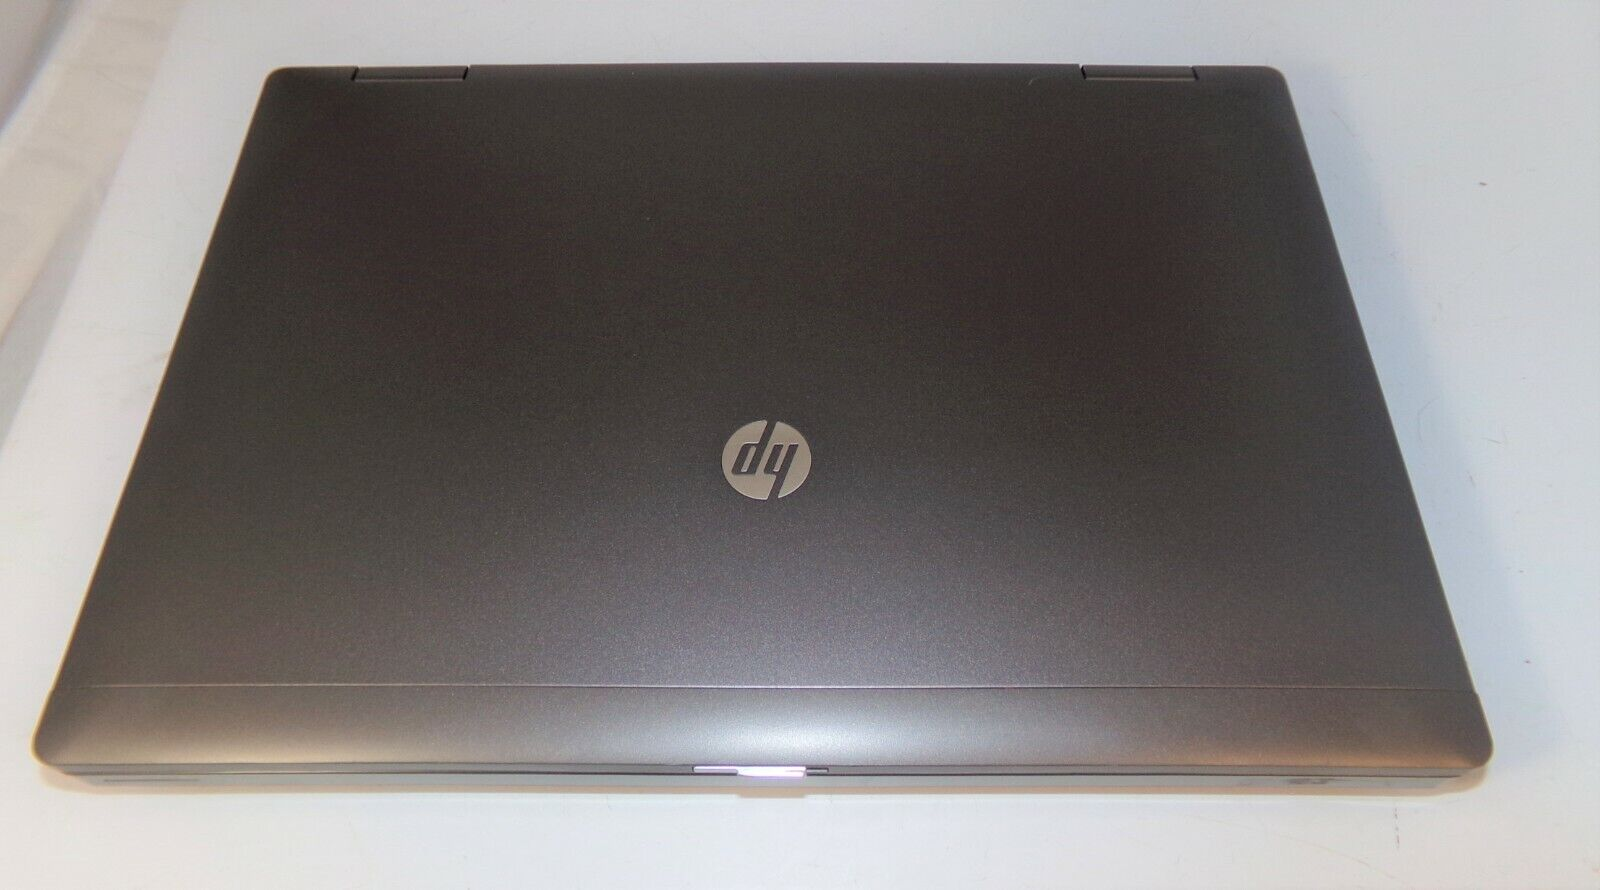 "Laptop Windows - HP ProBook 6470B 14"" i5-3340m 2.7GHz 8GB RAM 120GB SSD Windows 10 Home"